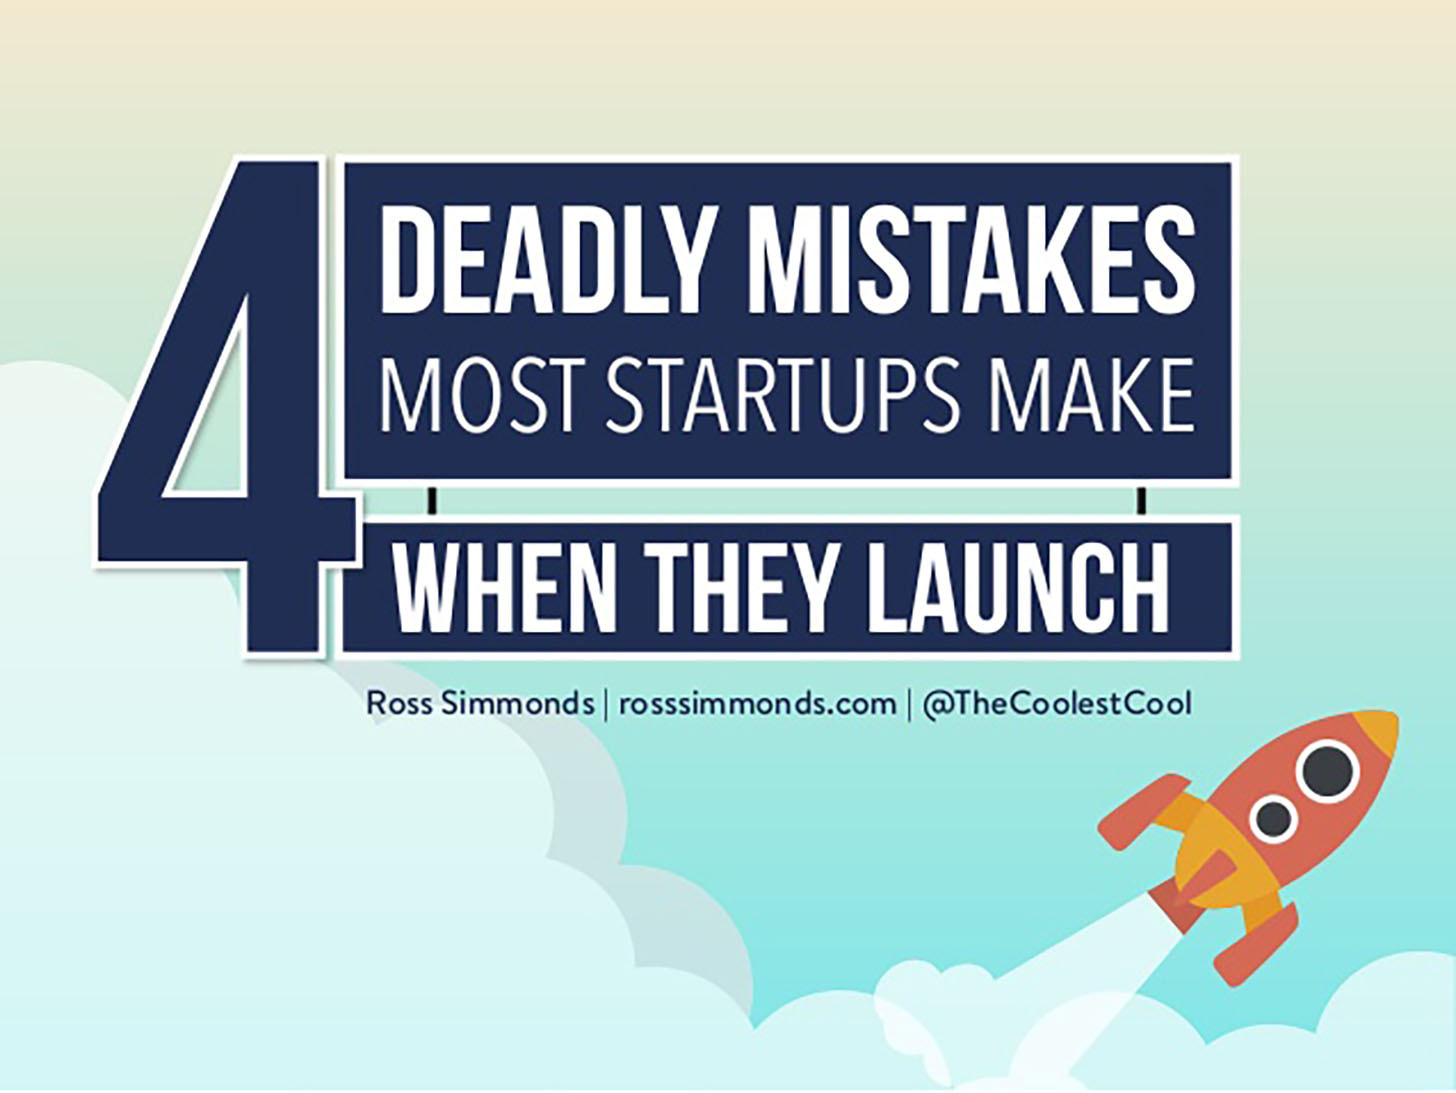 4-deadly-mistakes-most-startups-make-when-they-launch